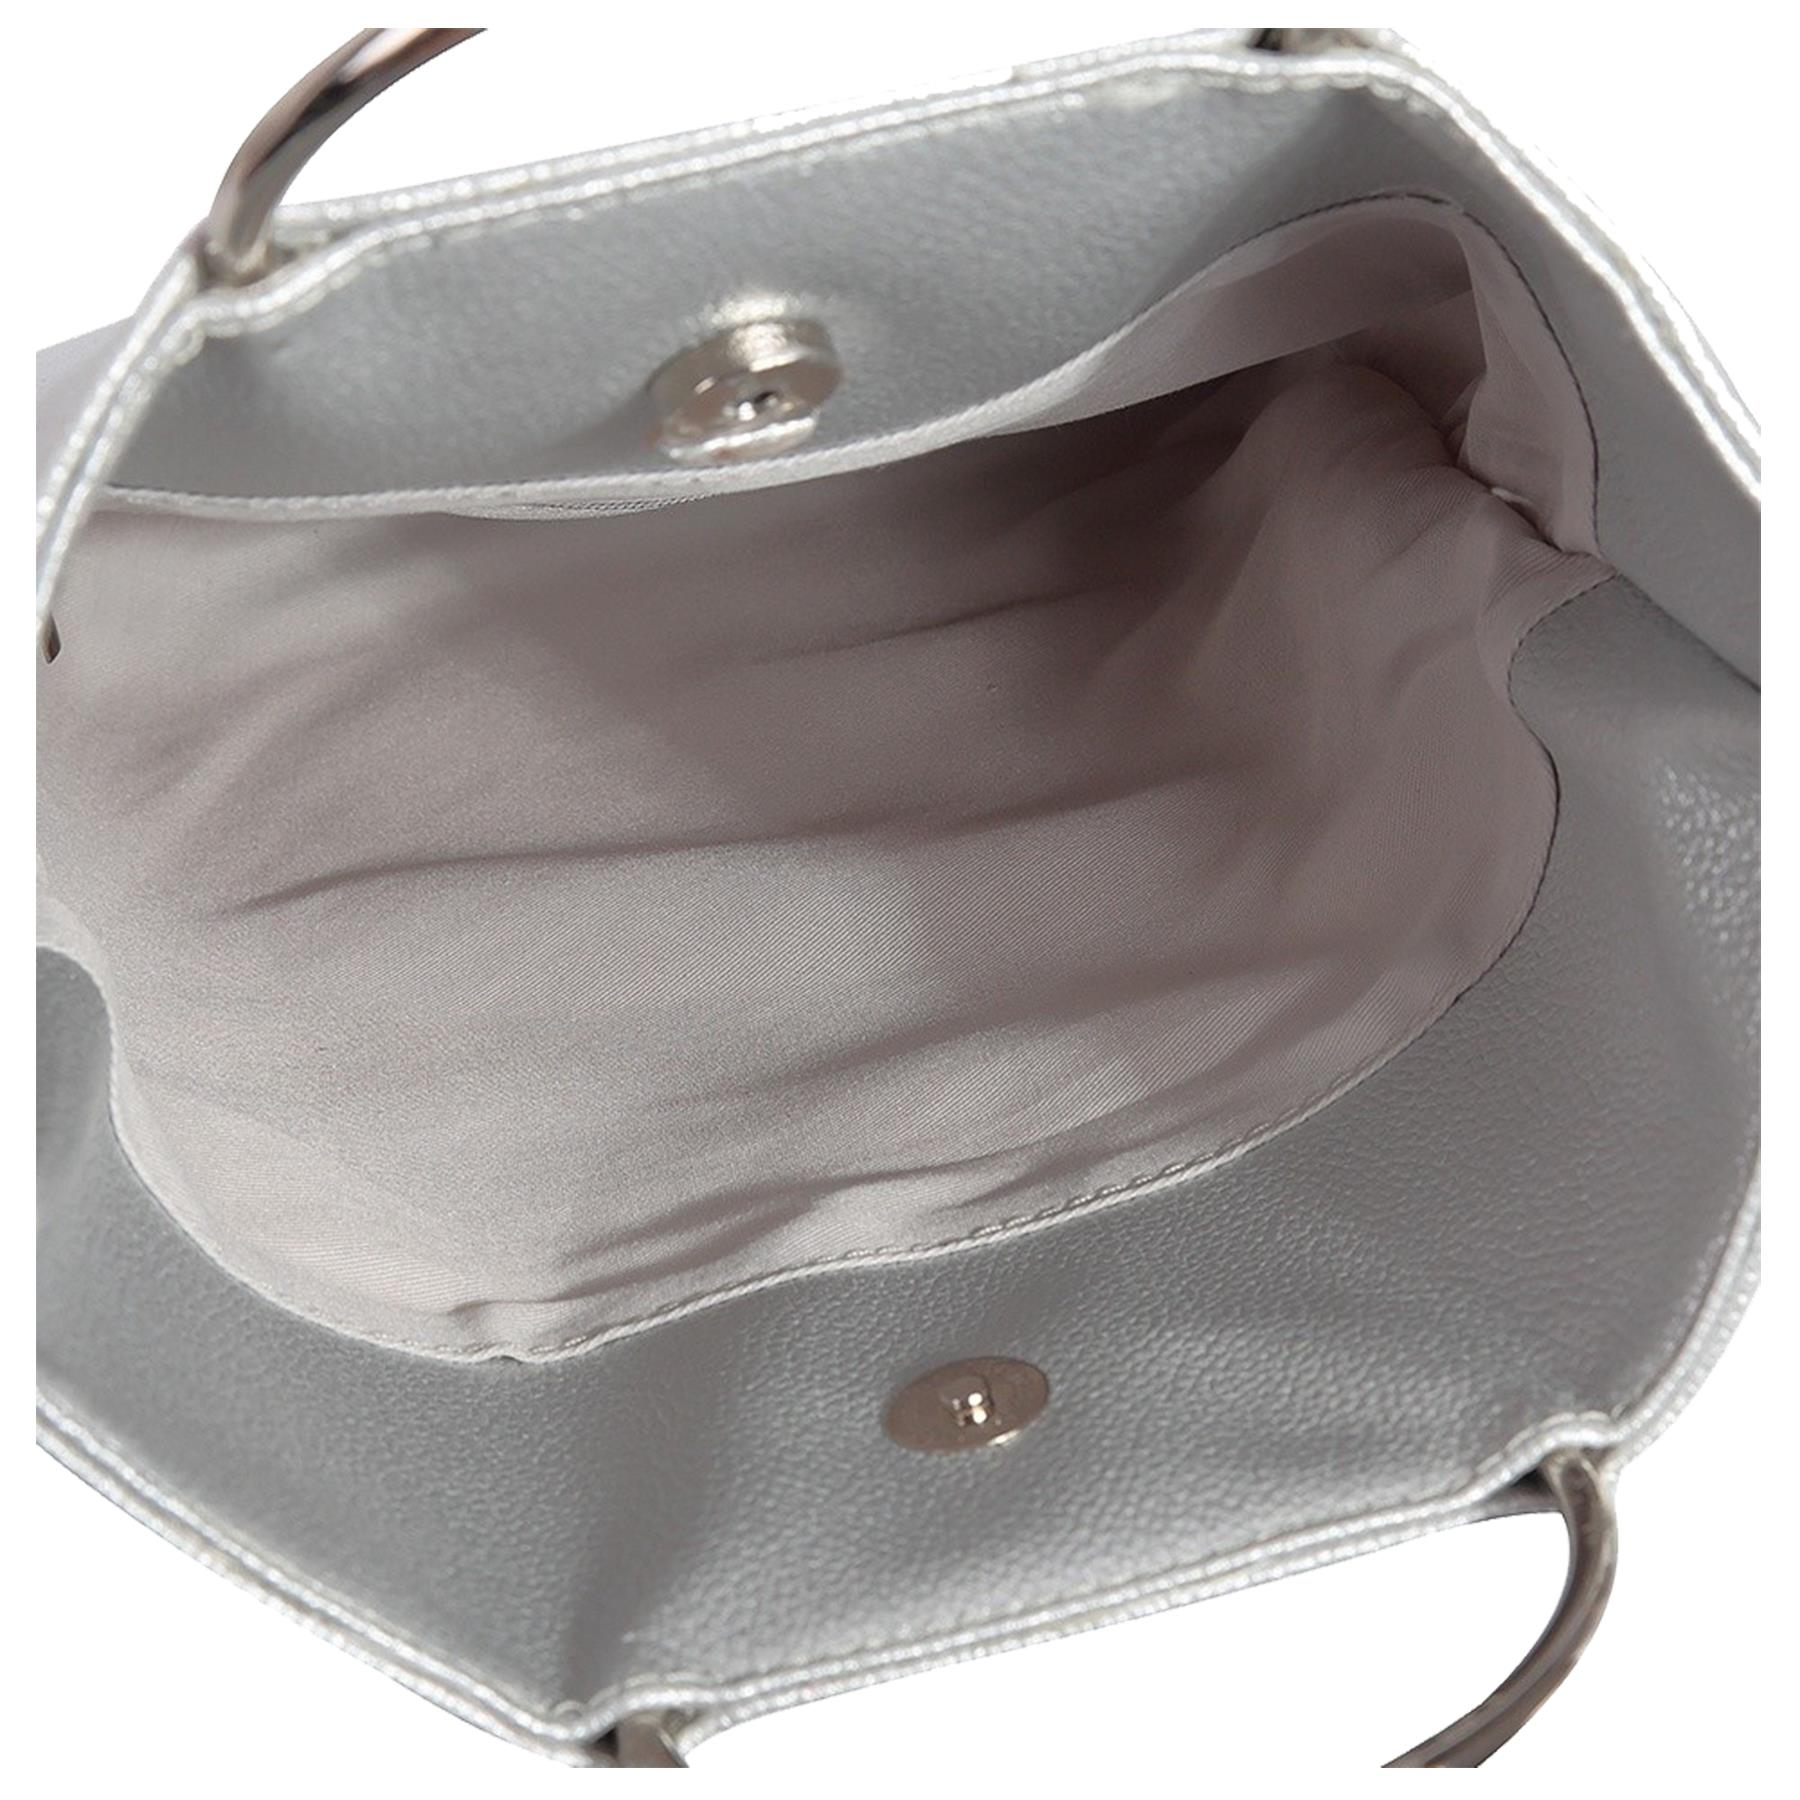 New-Women-s-Metallic-Ring-Top-Handles-Faux-Leather-Evening-Clutch-Bag thumbnail 16